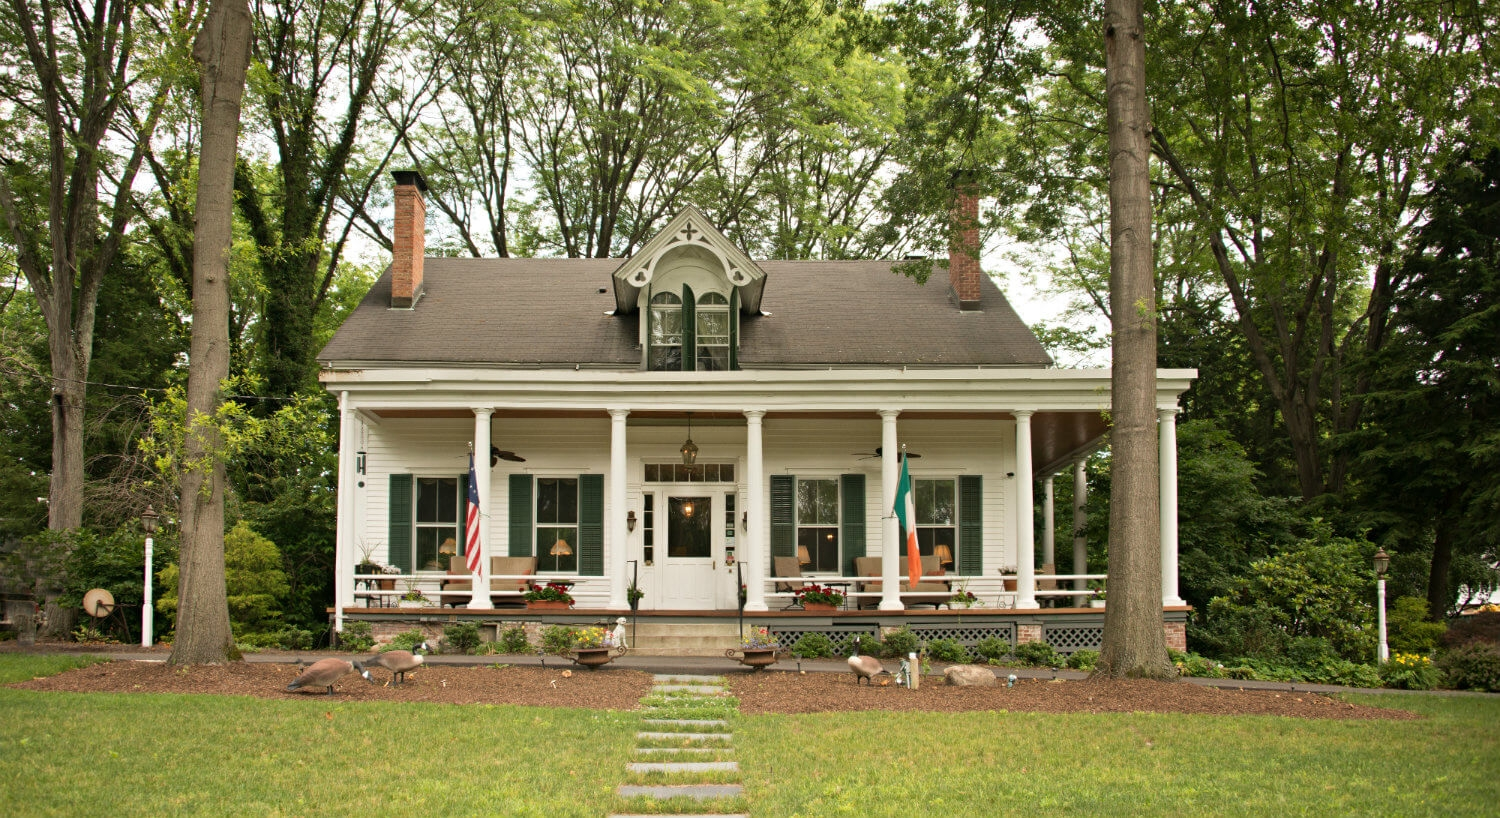 White cottage nestled among tall green trees; features cozy front porch